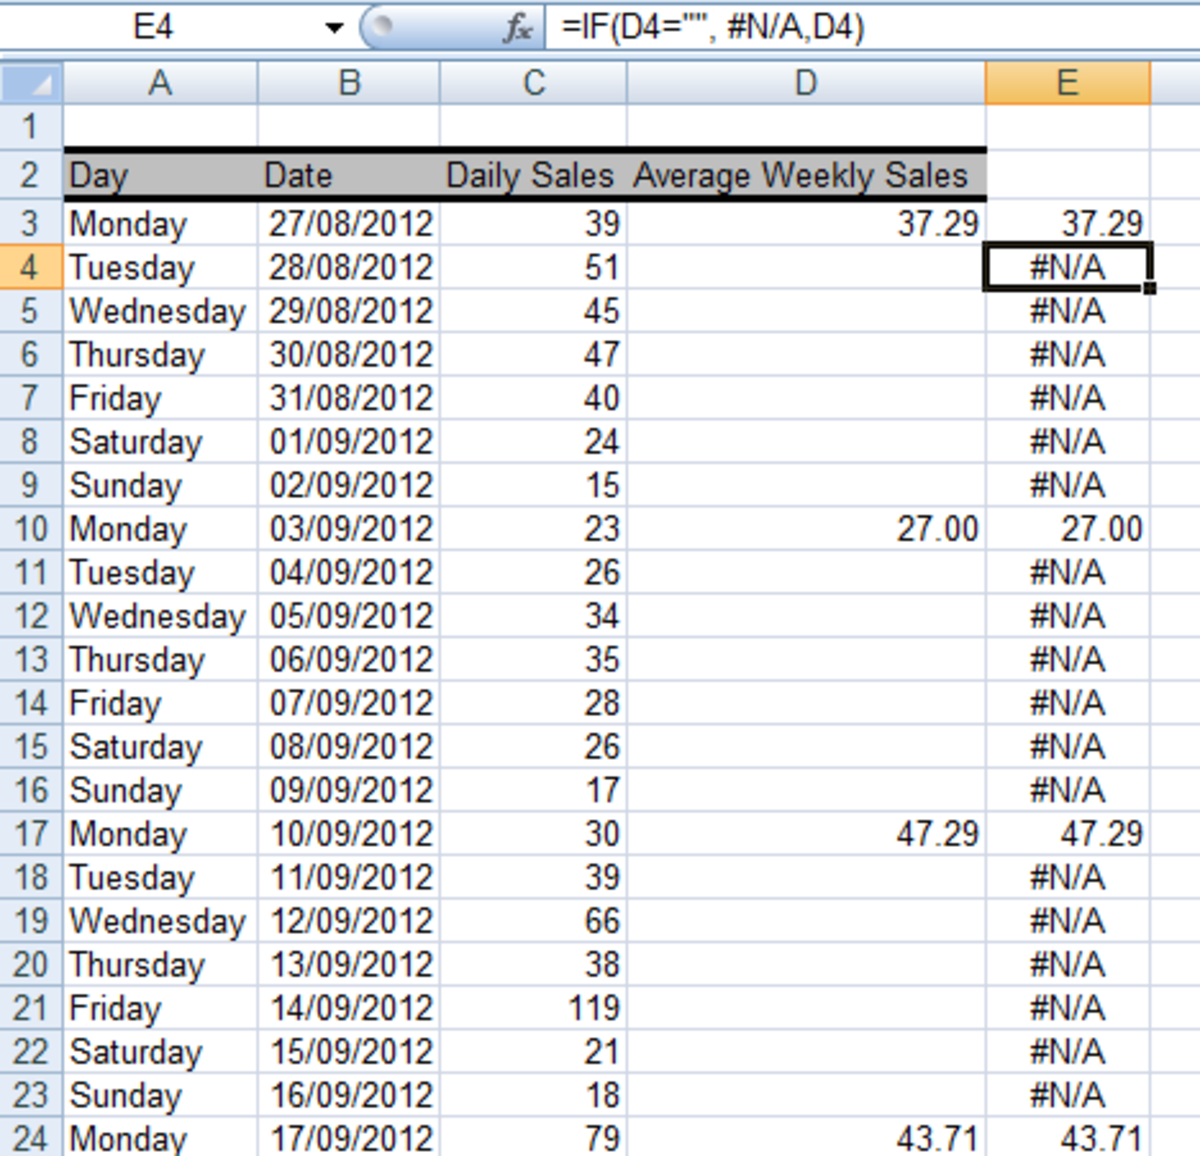 Ediblewildsus  Prepossessing How To Get Excel  And  To Ignore Empty Cells In A Chart Or  With Lovable Using The If Function In A Formula To Convert Empty Cells To Na With Adorable Today Excel Formula Also Scenario Manager In Excel In Addition Excel Iterations And Excel Keyboard Commands As Well As Merging Files In Excel Additionally Conditional Formatting Excel Vba From Turbofuturecom With Ediblewildsus  Lovable How To Get Excel  And  To Ignore Empty Cells In A Chart Or  With Adorable Using The If Function In A Formula To Convert Empty Cells To Na And Prepossessing Today Excel Formula Also Scenario Manager In Excel In Addition Excel Iterations From Turbofuturecom